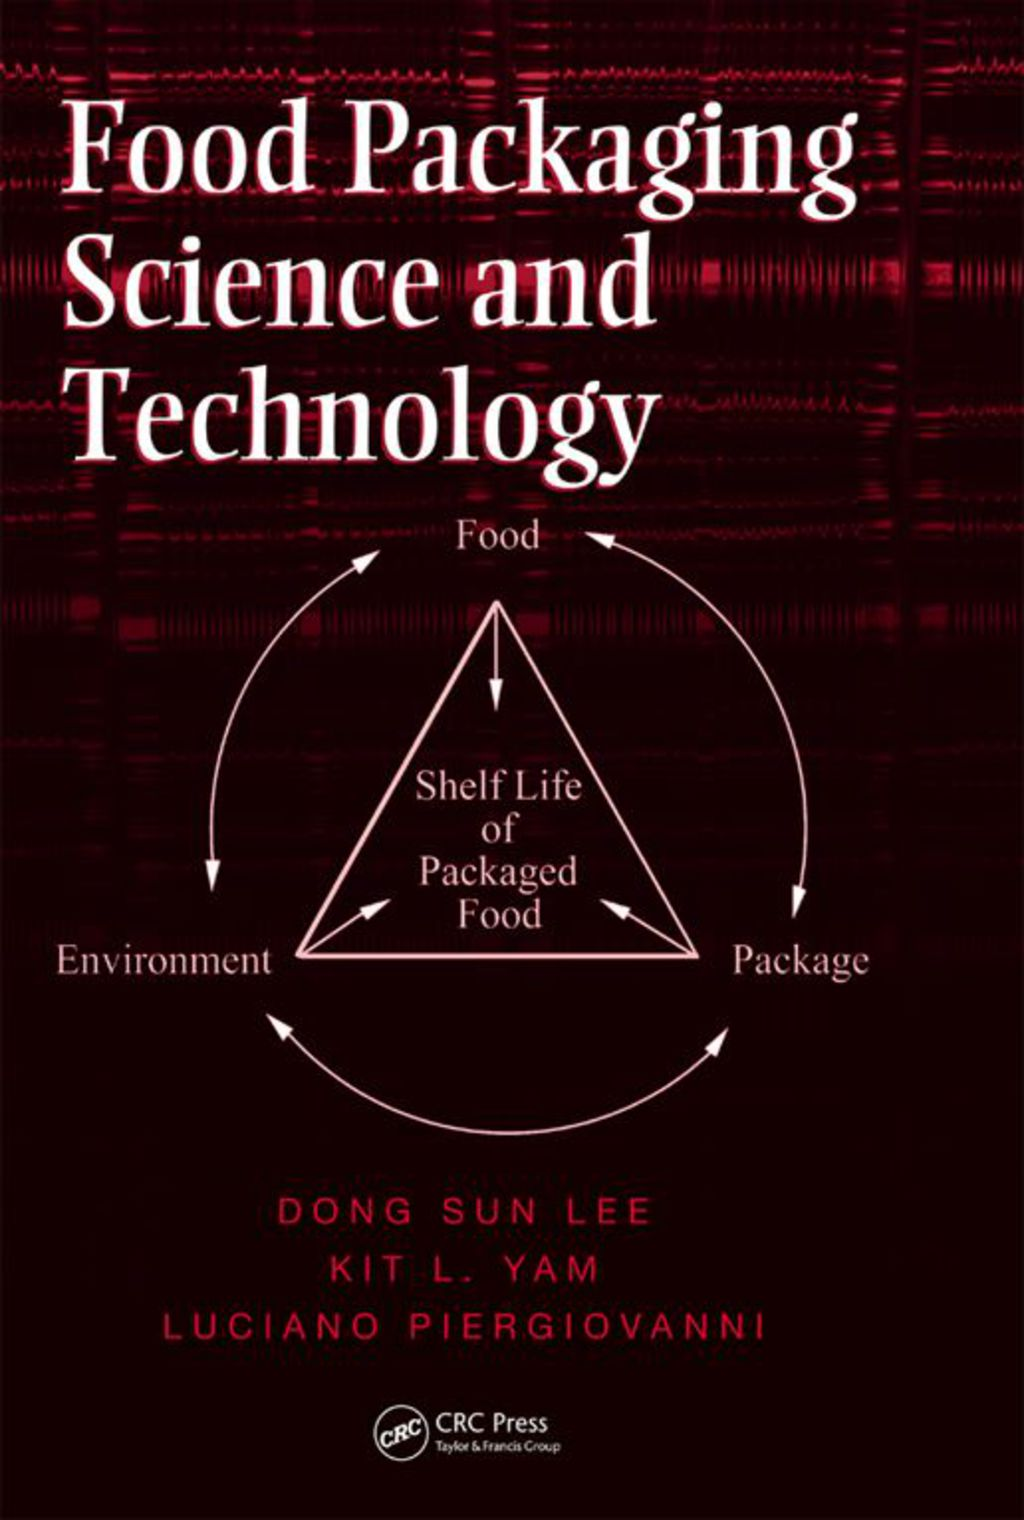 Food Packaging Science and Technology (ebook) eBooks